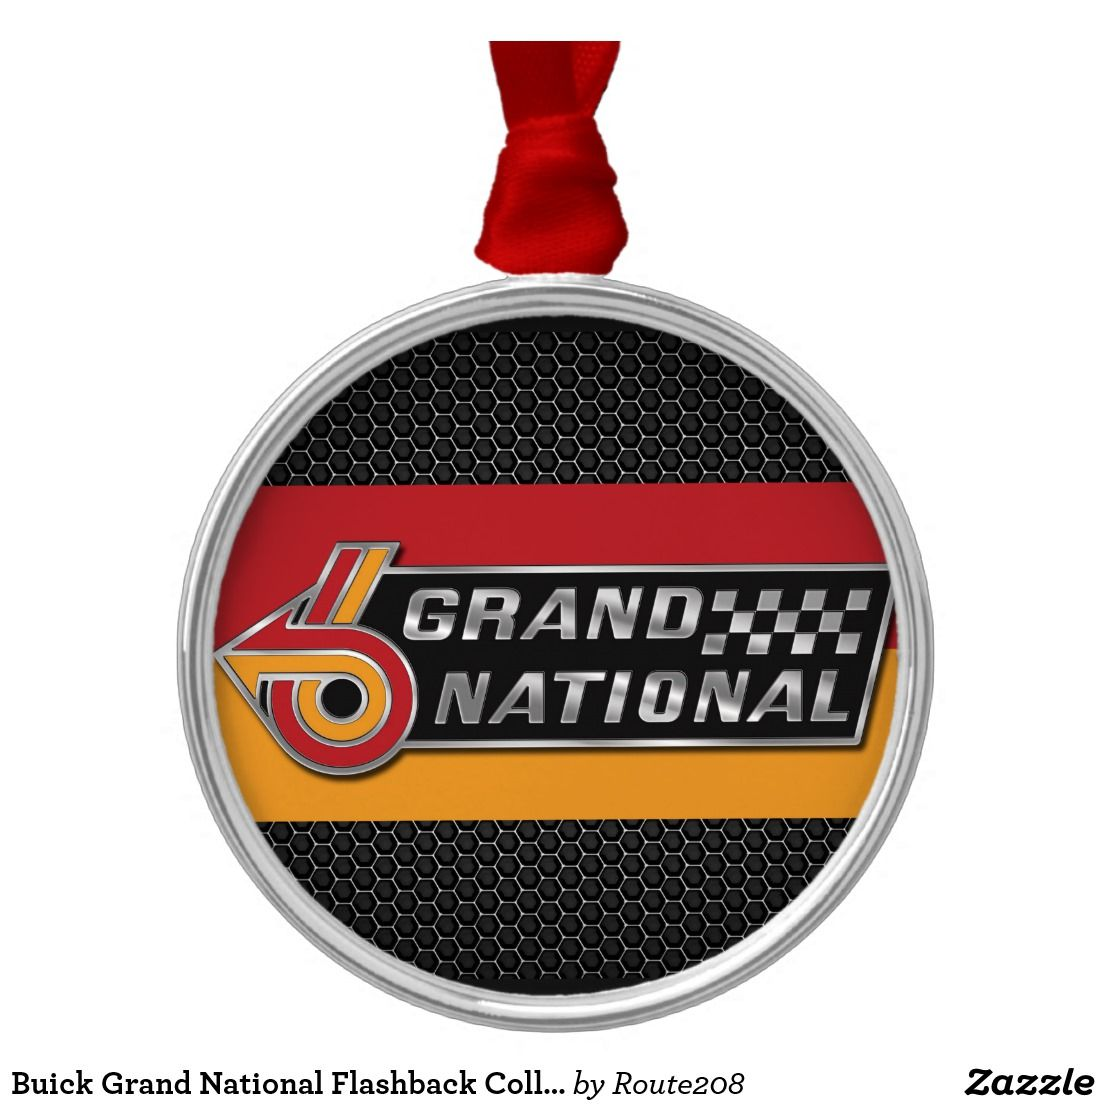 Buick Grand National Flashback Collector Car Holiday Ornament